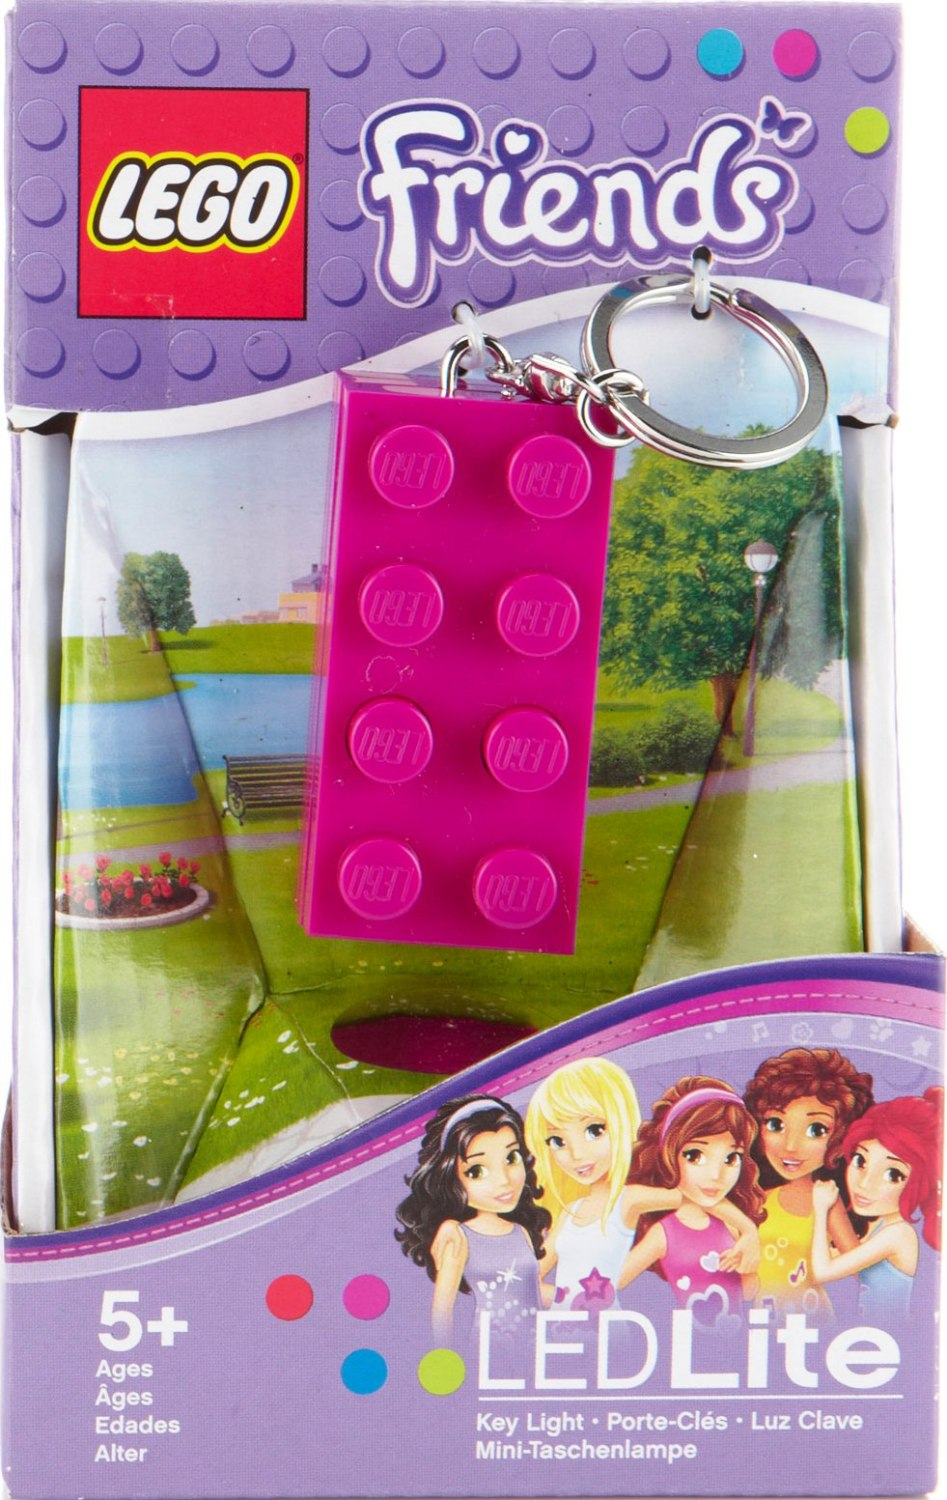 - LEGO Friends - LED Lite Key Light Keyring / Keychain - Pink - NEW